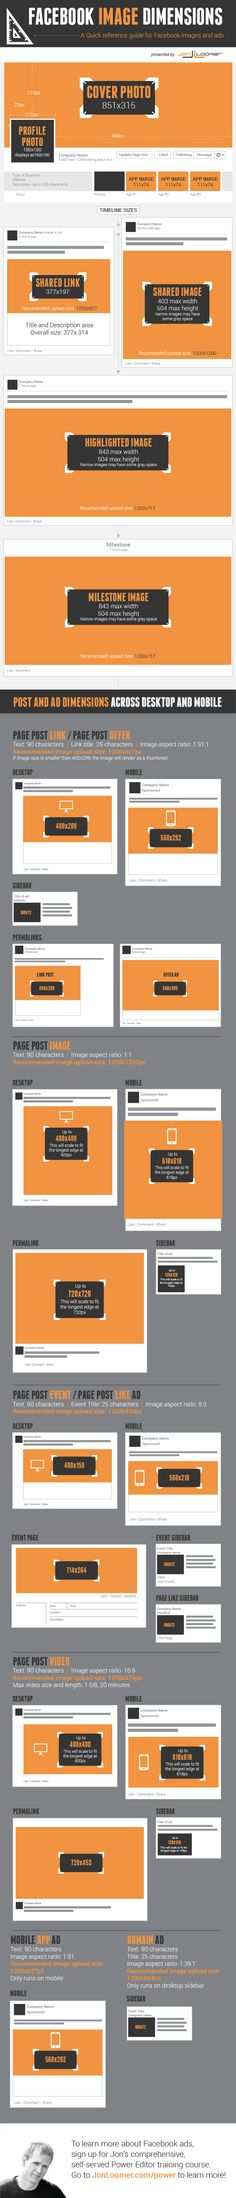 Updated! March 2014 Facebook Image Sizes... via @Jon Loomer